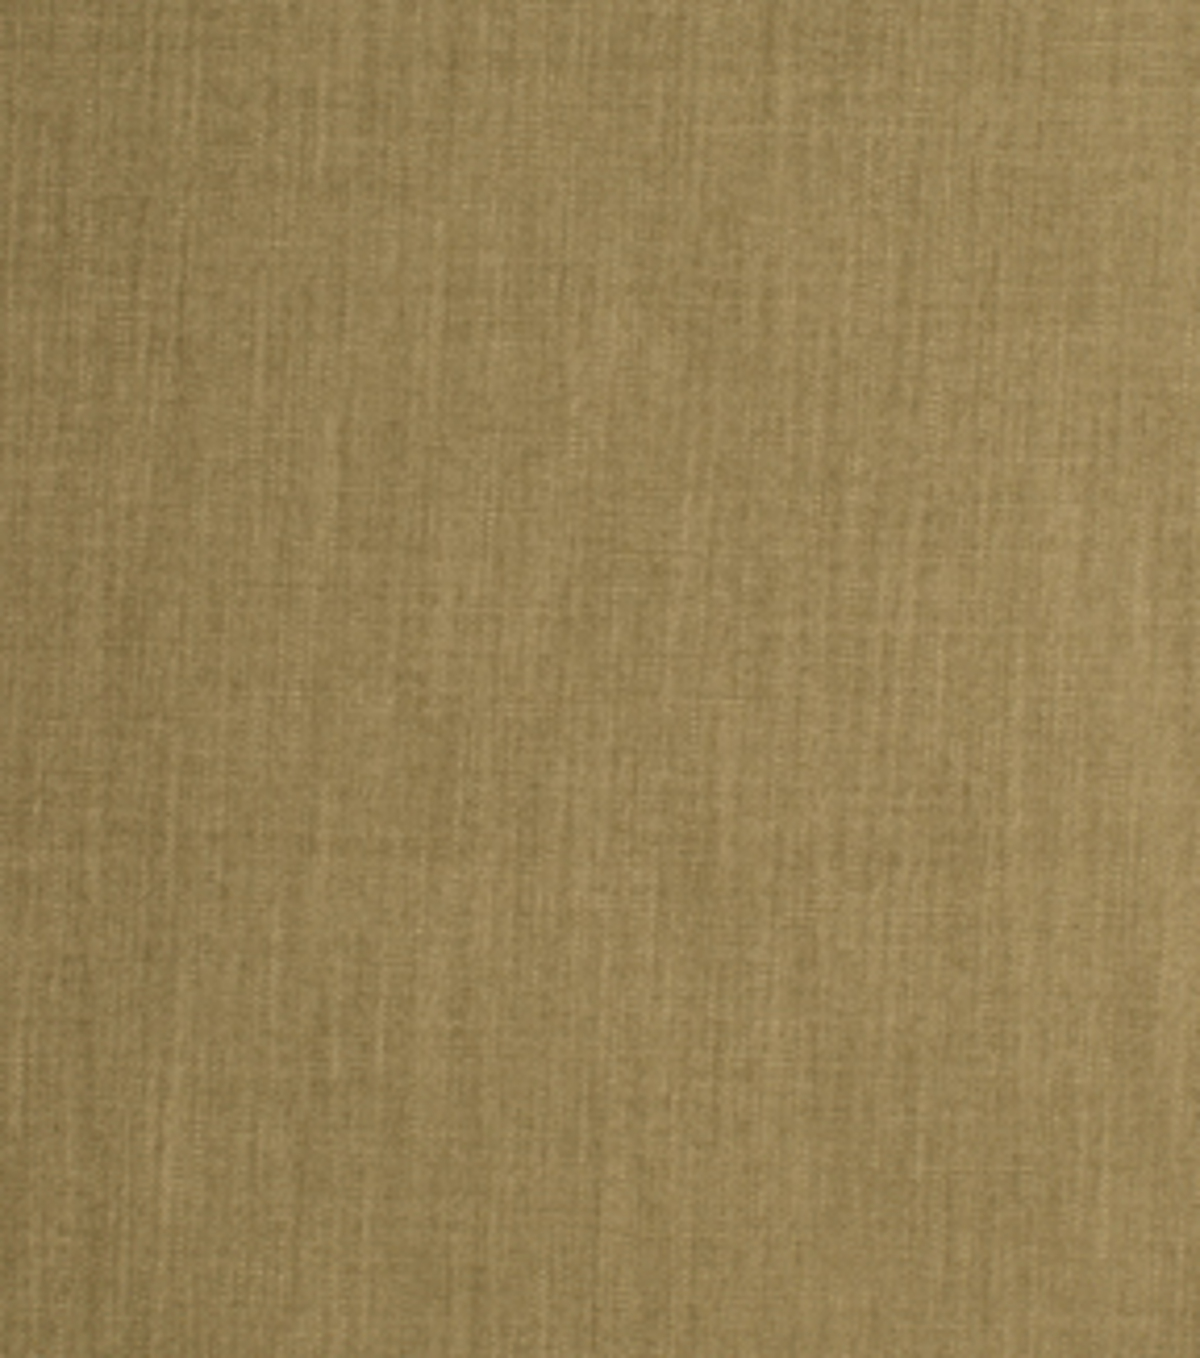 Home Decor 8\u0022x8\u0022 Fabric Swatch-Signature Series Media Willow